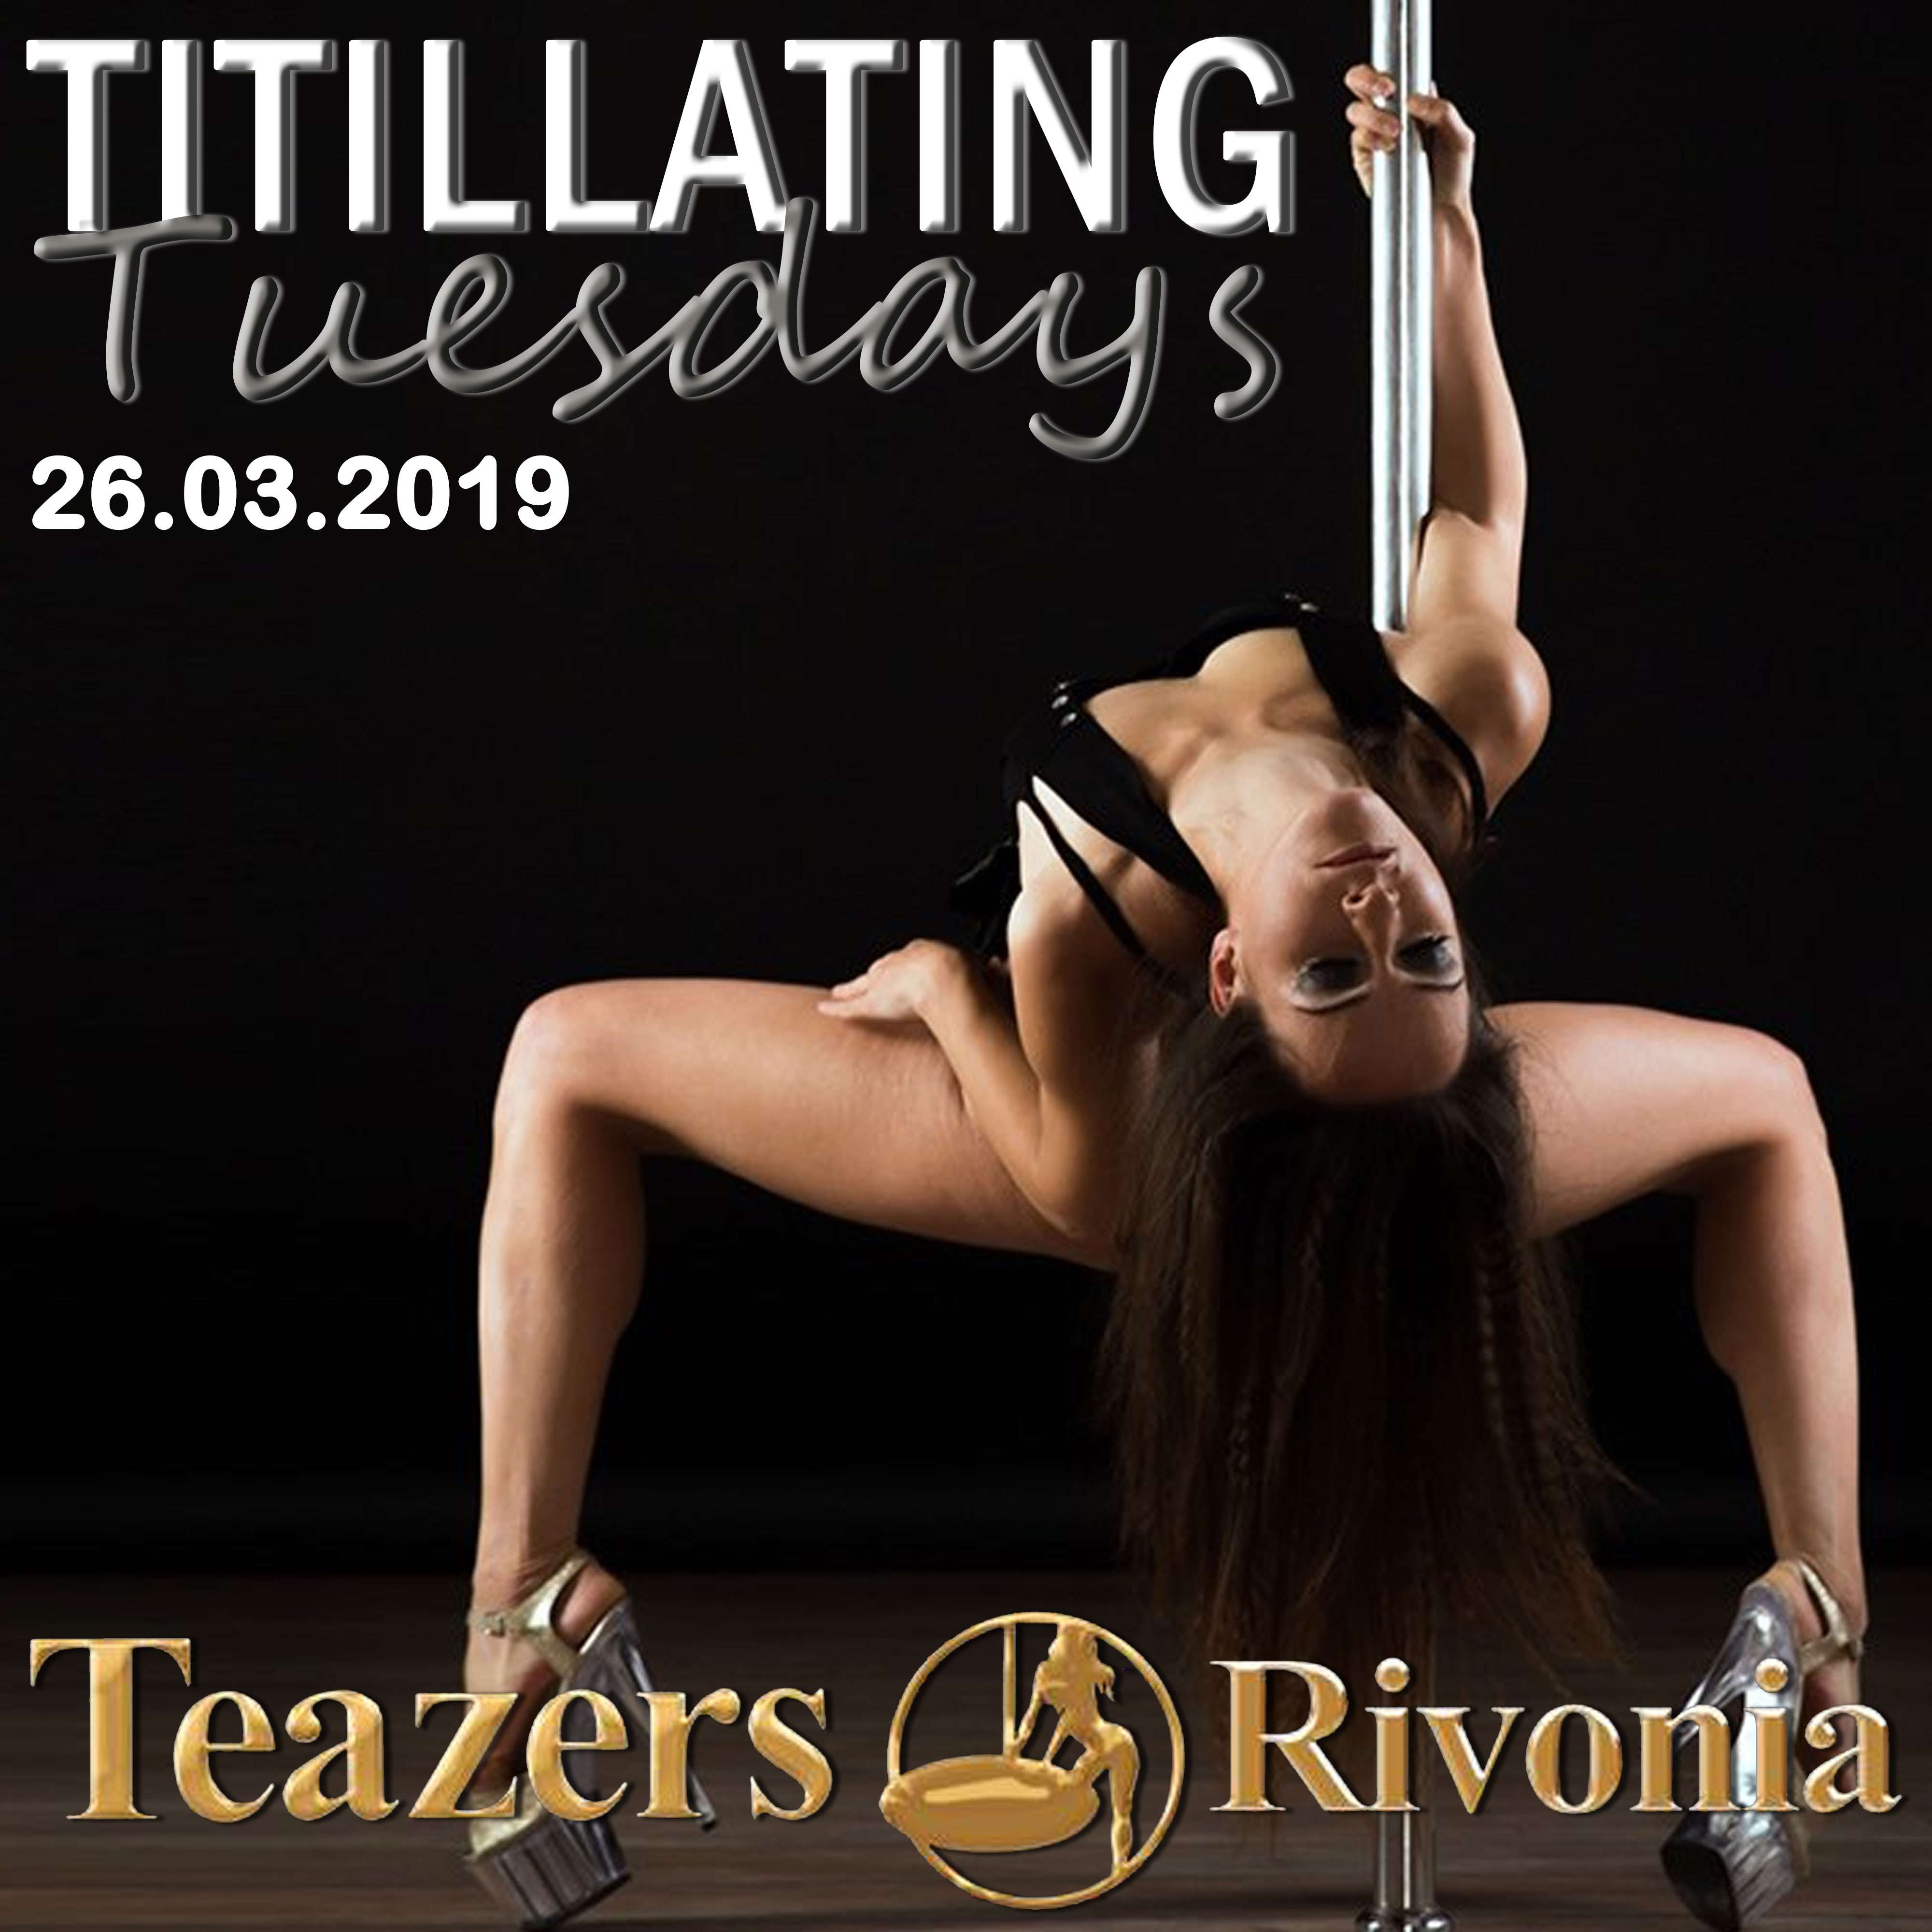 Titillating Tuesday